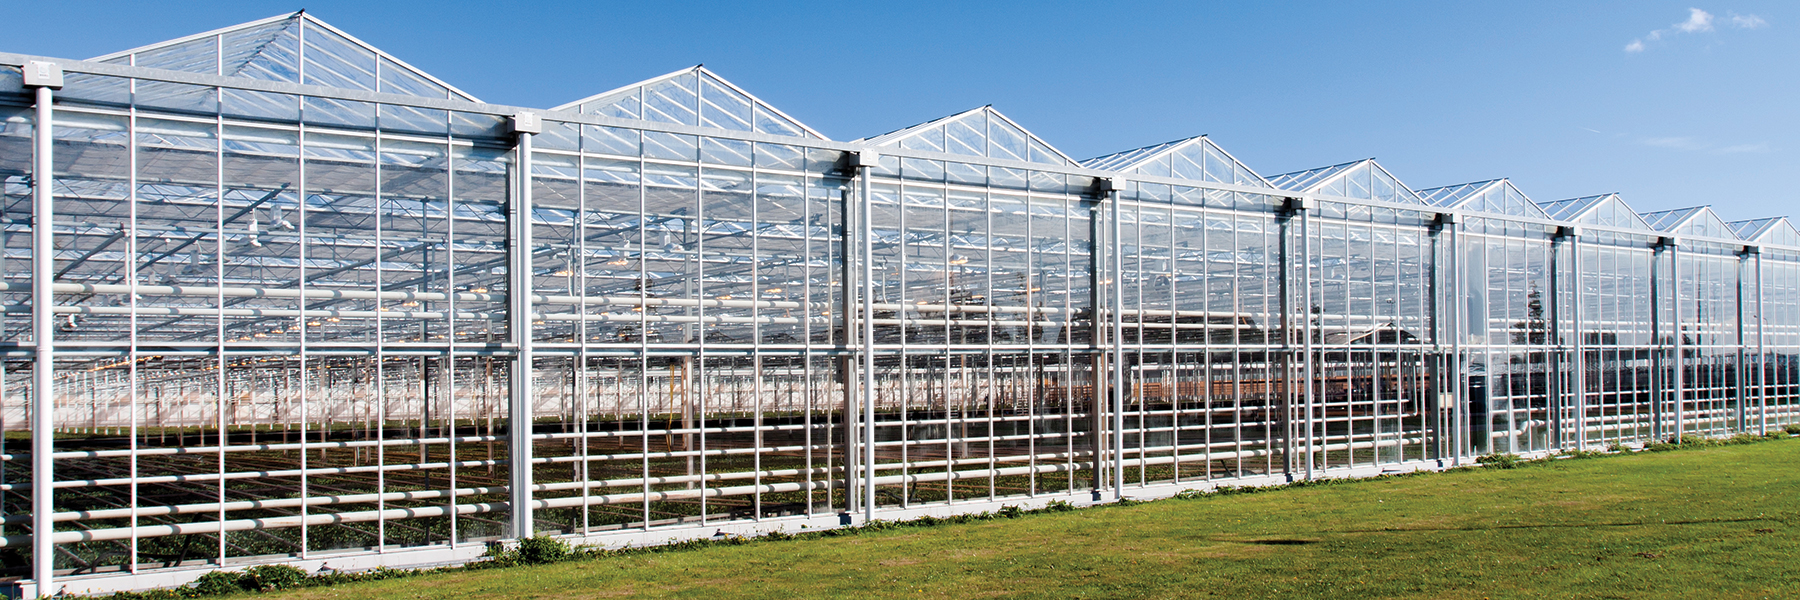 outside commercial greenhouse